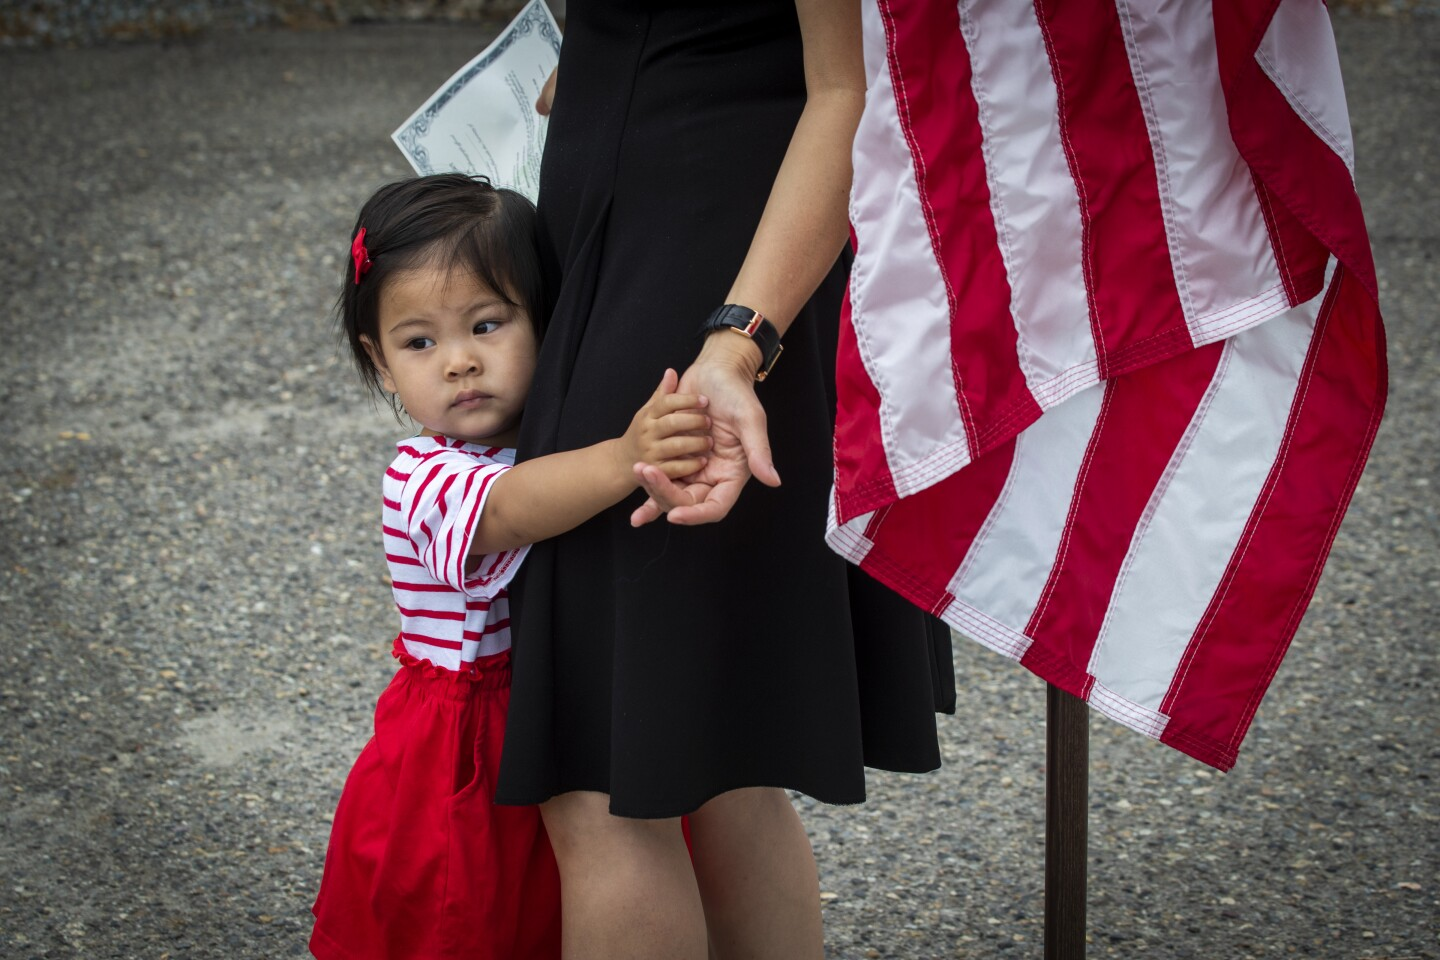 LAGUNA NIGUEL, CA - JUNE 23: Talia Han, 1, hugs her mom, Thao Pham, who's a pop singer with a stage name of Thanh Thao, after taking the oath of allegiance at a drive through citizenship naturalization at the Chet Holifield Federal Building parking lot Tuesday, June 23, 2020 in Laguna Niguel. Pham immigrated to Westminster from Vietnam. About 210-270 people a day have appointments throughout the day for 11 days in seven locations across Southern California. Due to the COVID-19 pandemic, the courts have delegated the authority to U.S. Citizenship and Immigration Services to administer the Oath of Allegiance at the naturalization ceremony. Taking the oath completes the process of becoming a U.S. citizen. (Allen J. Schaben / Los Angeles Times)